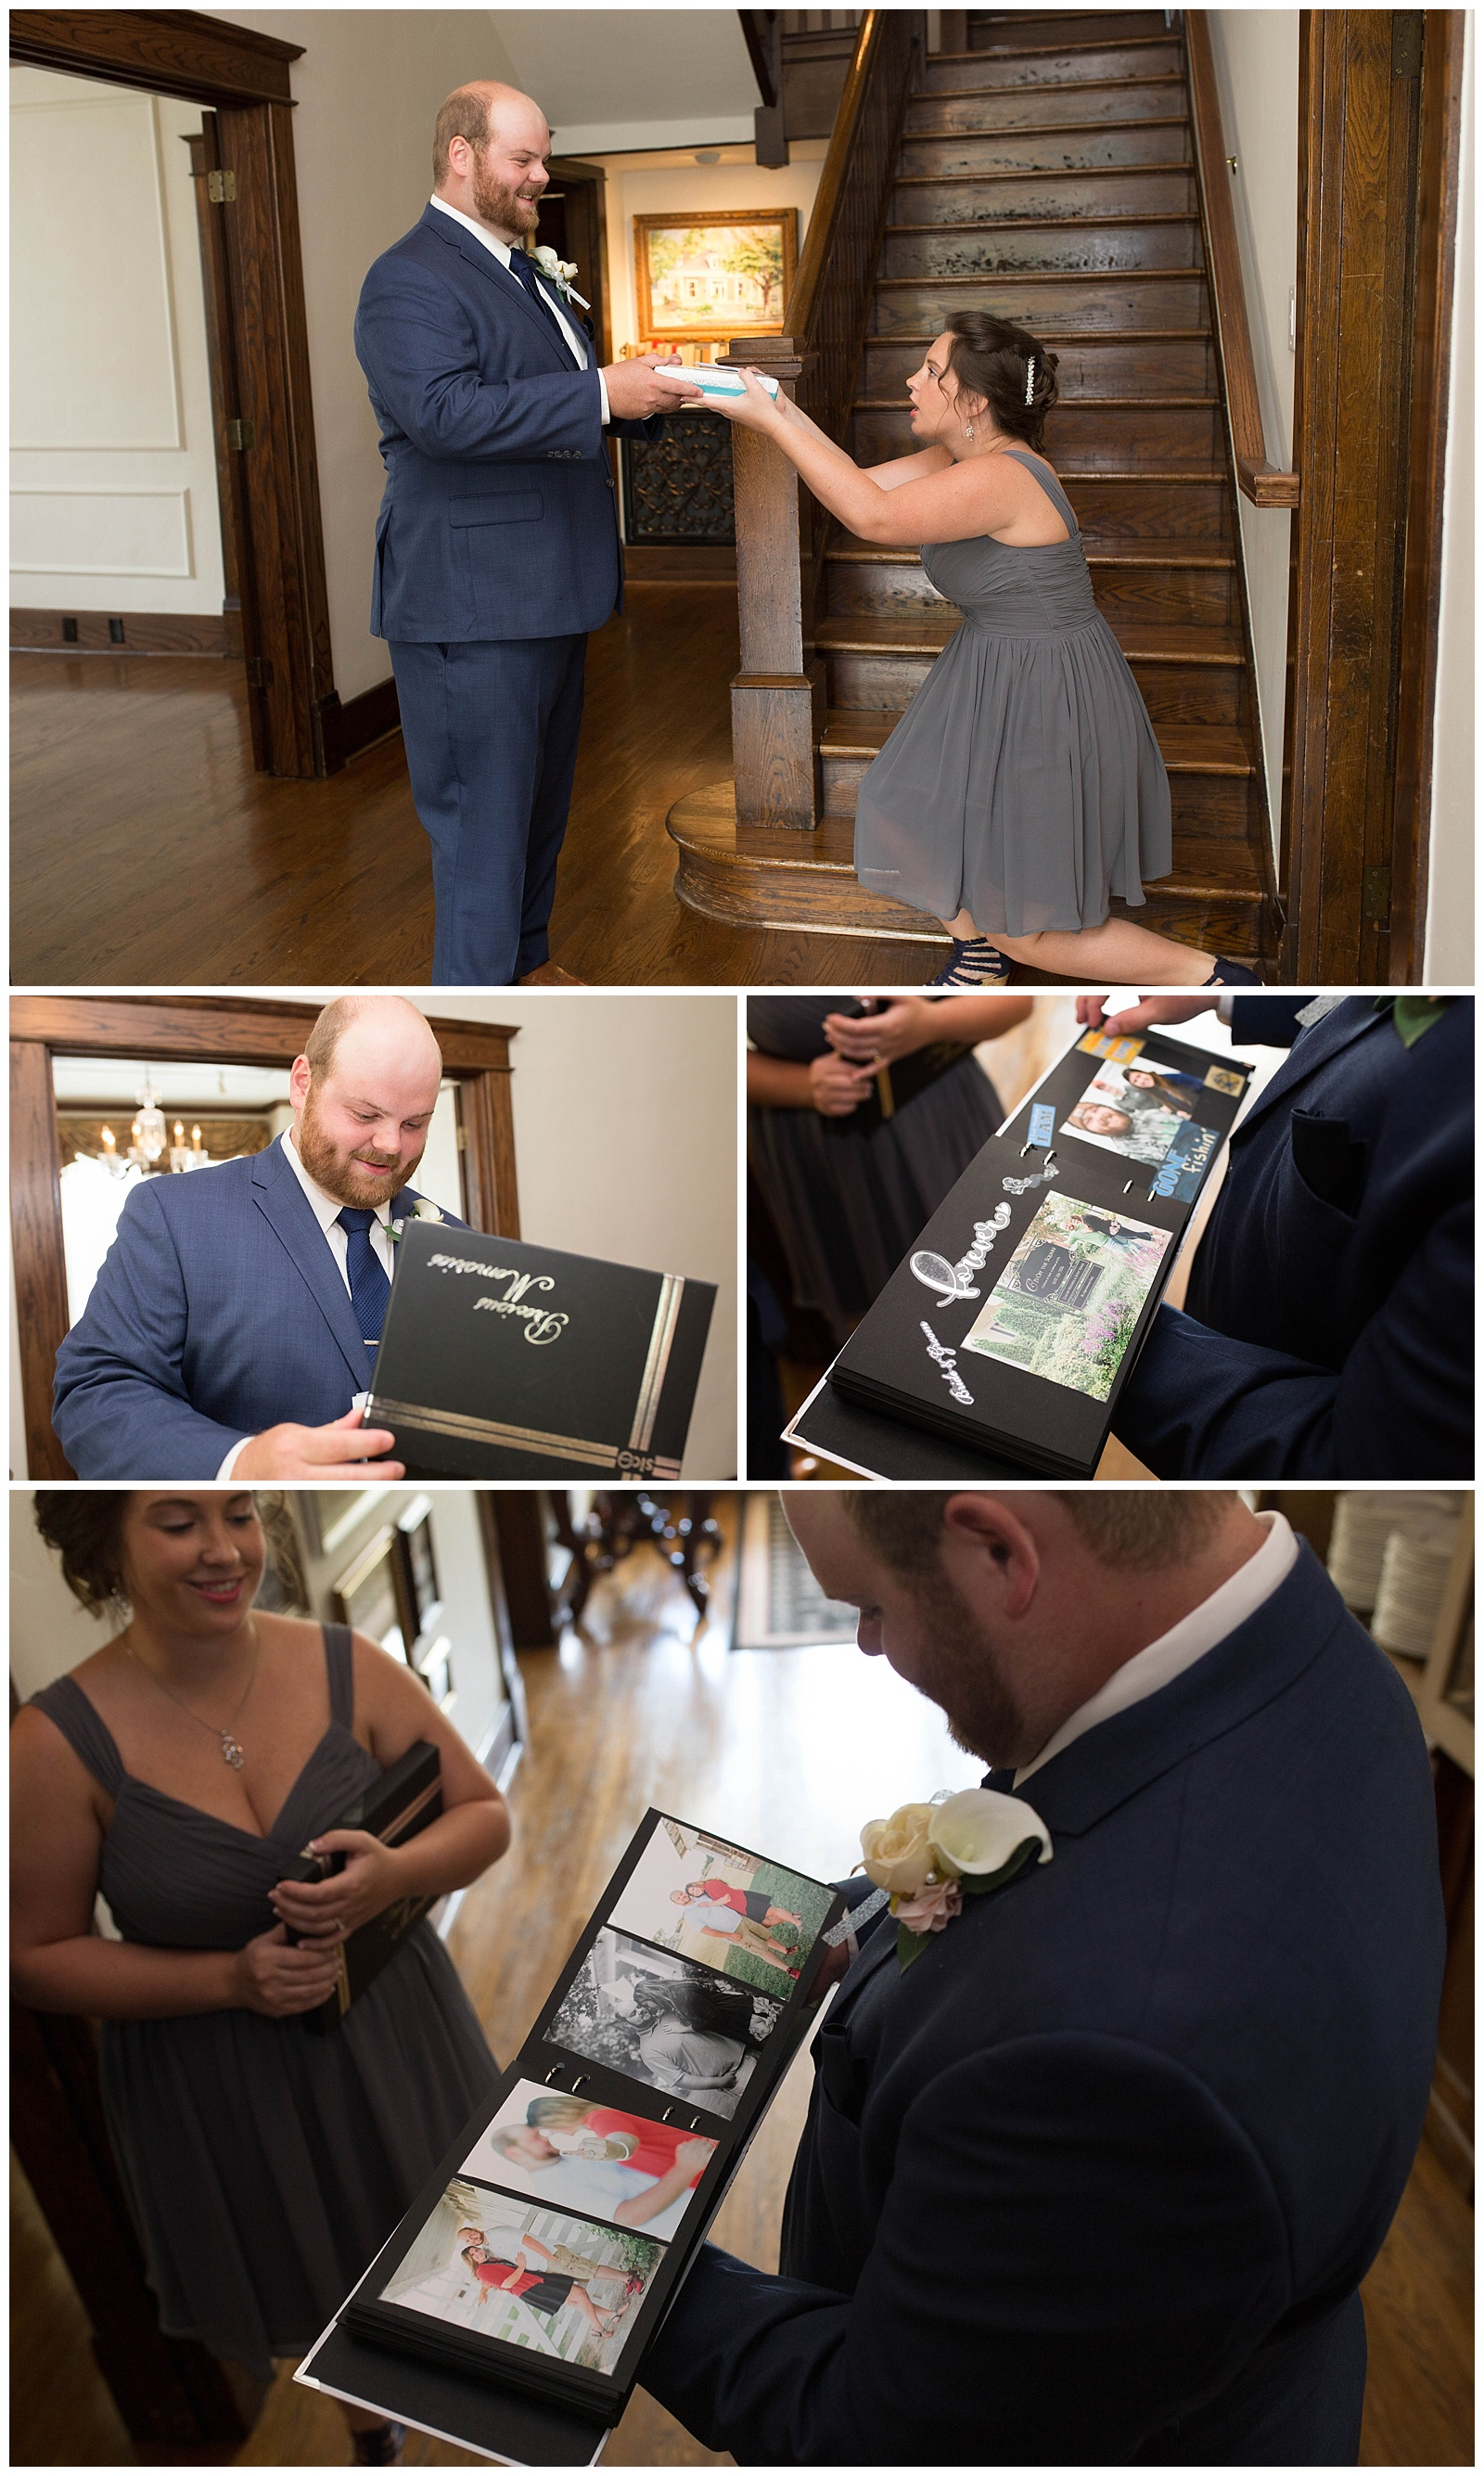 The story behind this: Liz and Ethan always gifted each other scrapbooks yearly. Since this year, they will be together and no longer will need to share them, Liz snuck and made this scrapbook as a huge surprise to her new hubby! She even had pictures in it from WEDDING DAY!! She put so much thought and love into this!